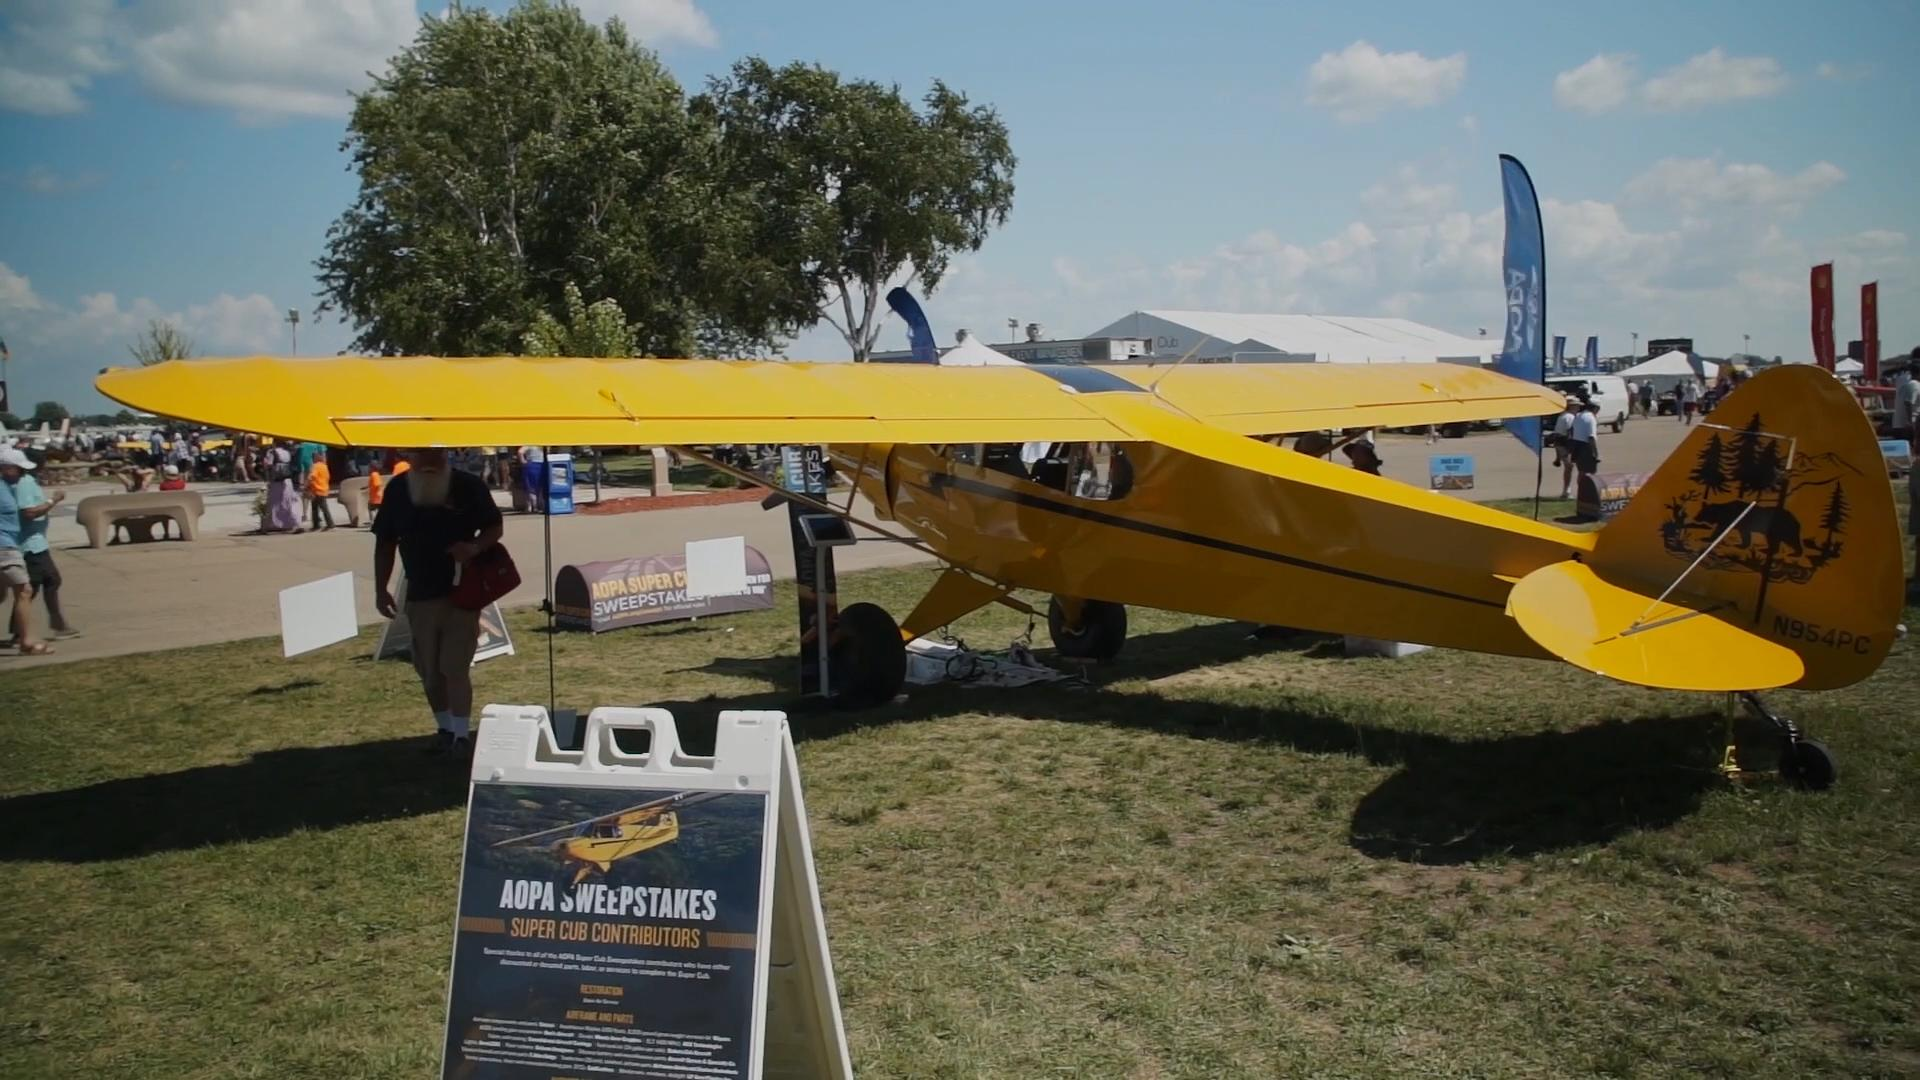 b43162a54fd30 Sweepstakes Super Cub at AirVenture - Latest videos - AOPA Live Video  Gallery